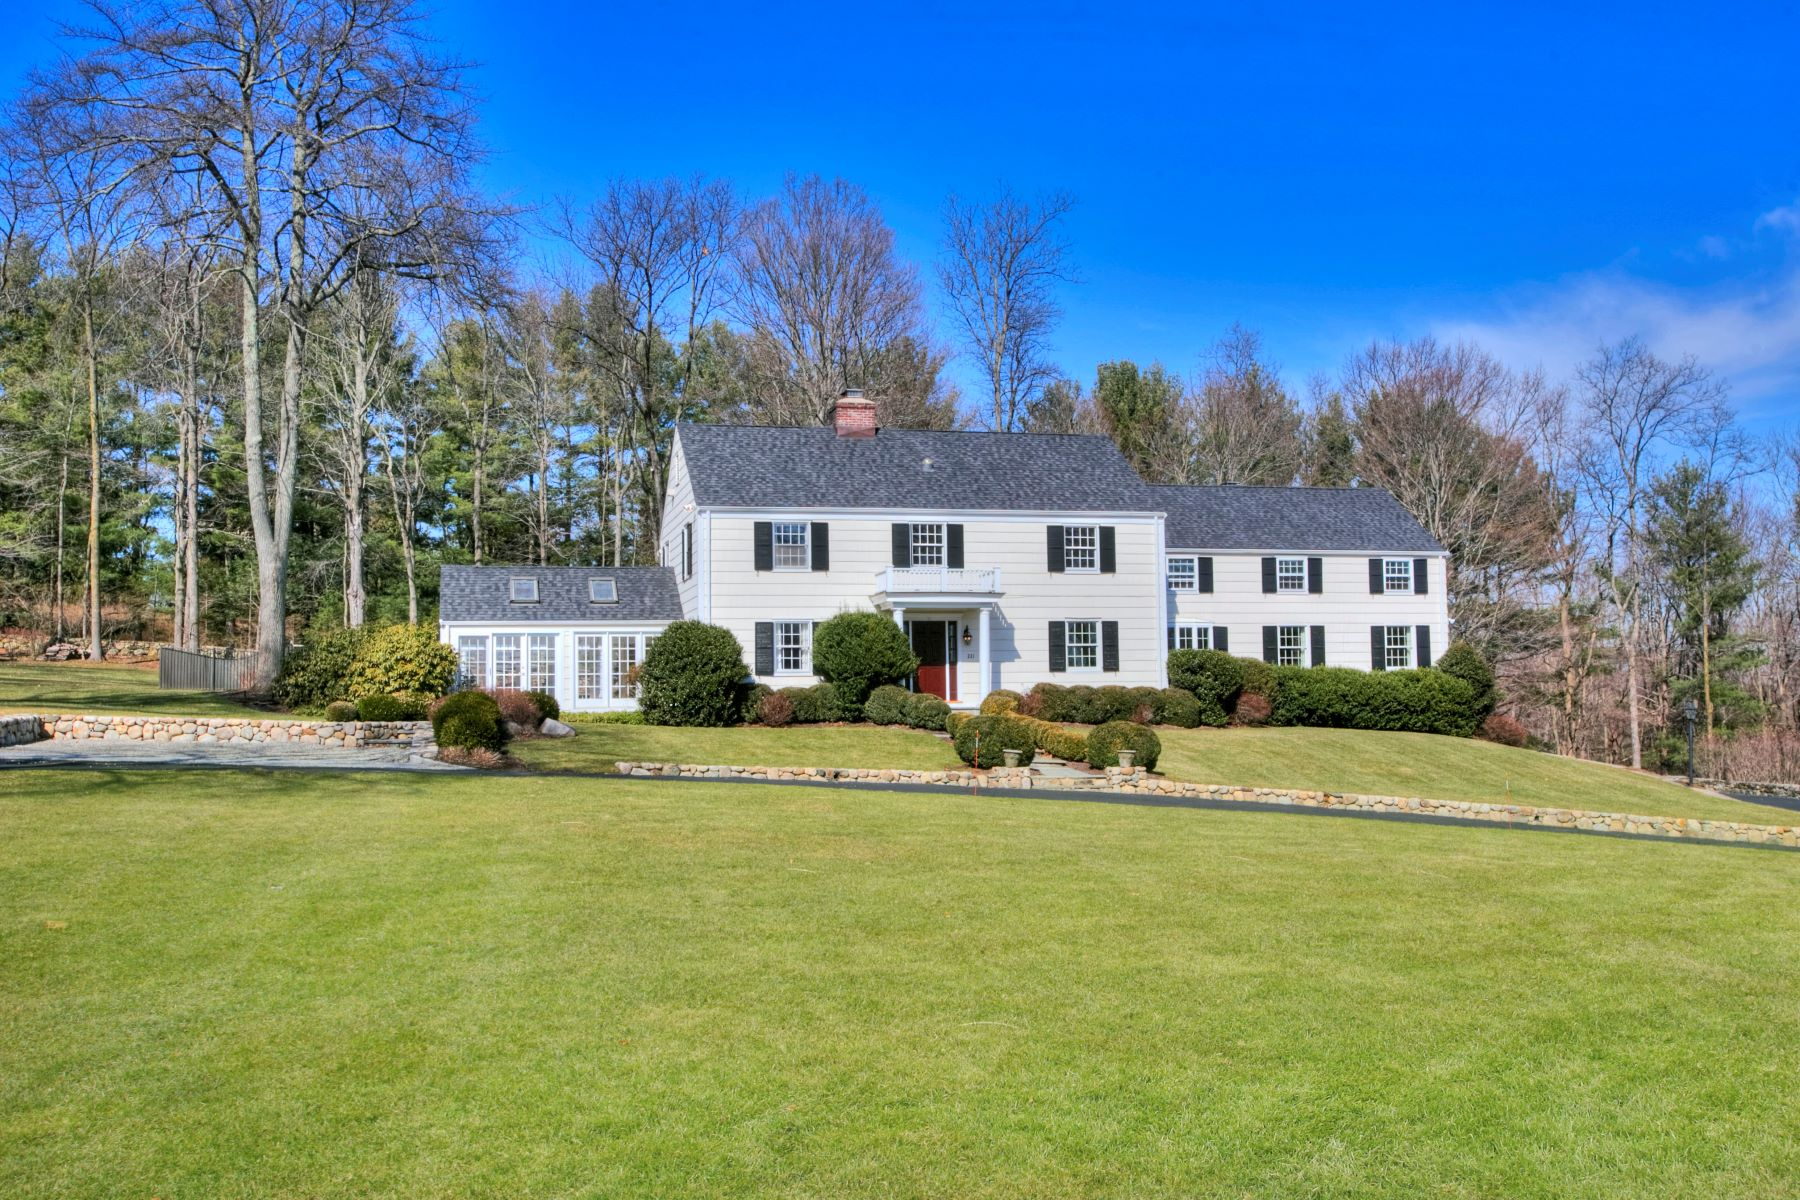 Single Family Home for Sale at 221 Canoe Hill Road New Canaan, Connecticut, 06840 United States